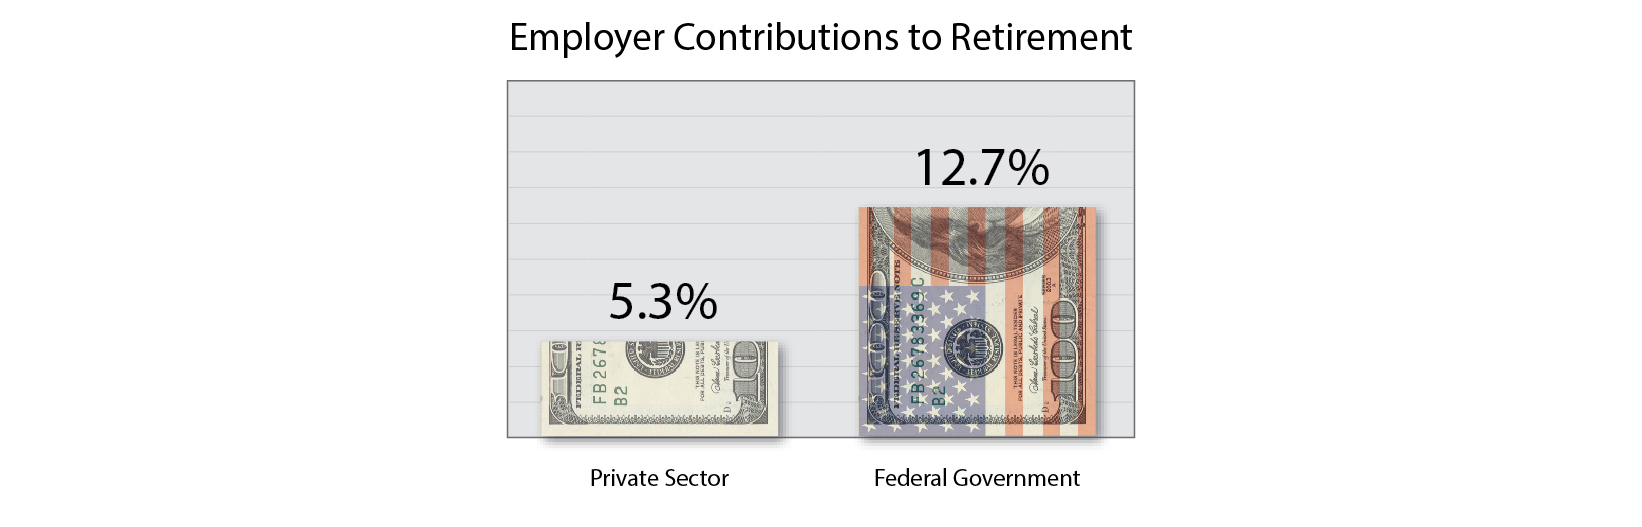 Employer Contributions to Retirement